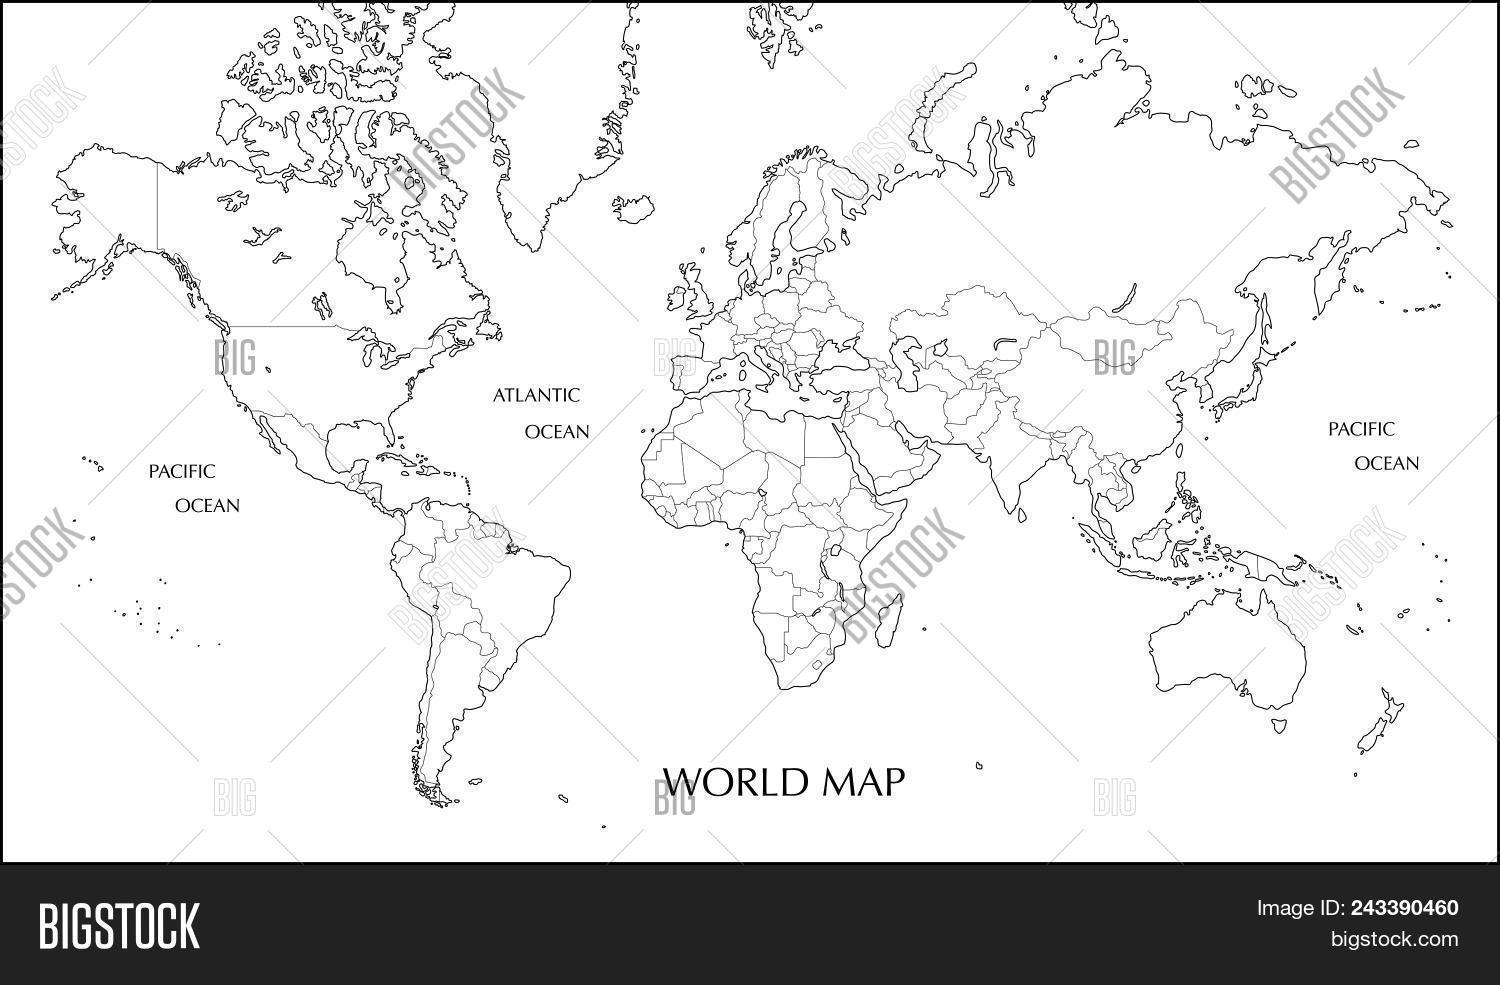 World map mercator vector photo free trial bigstock world map mercator projection blank map with boundary line gumiabroncs Images